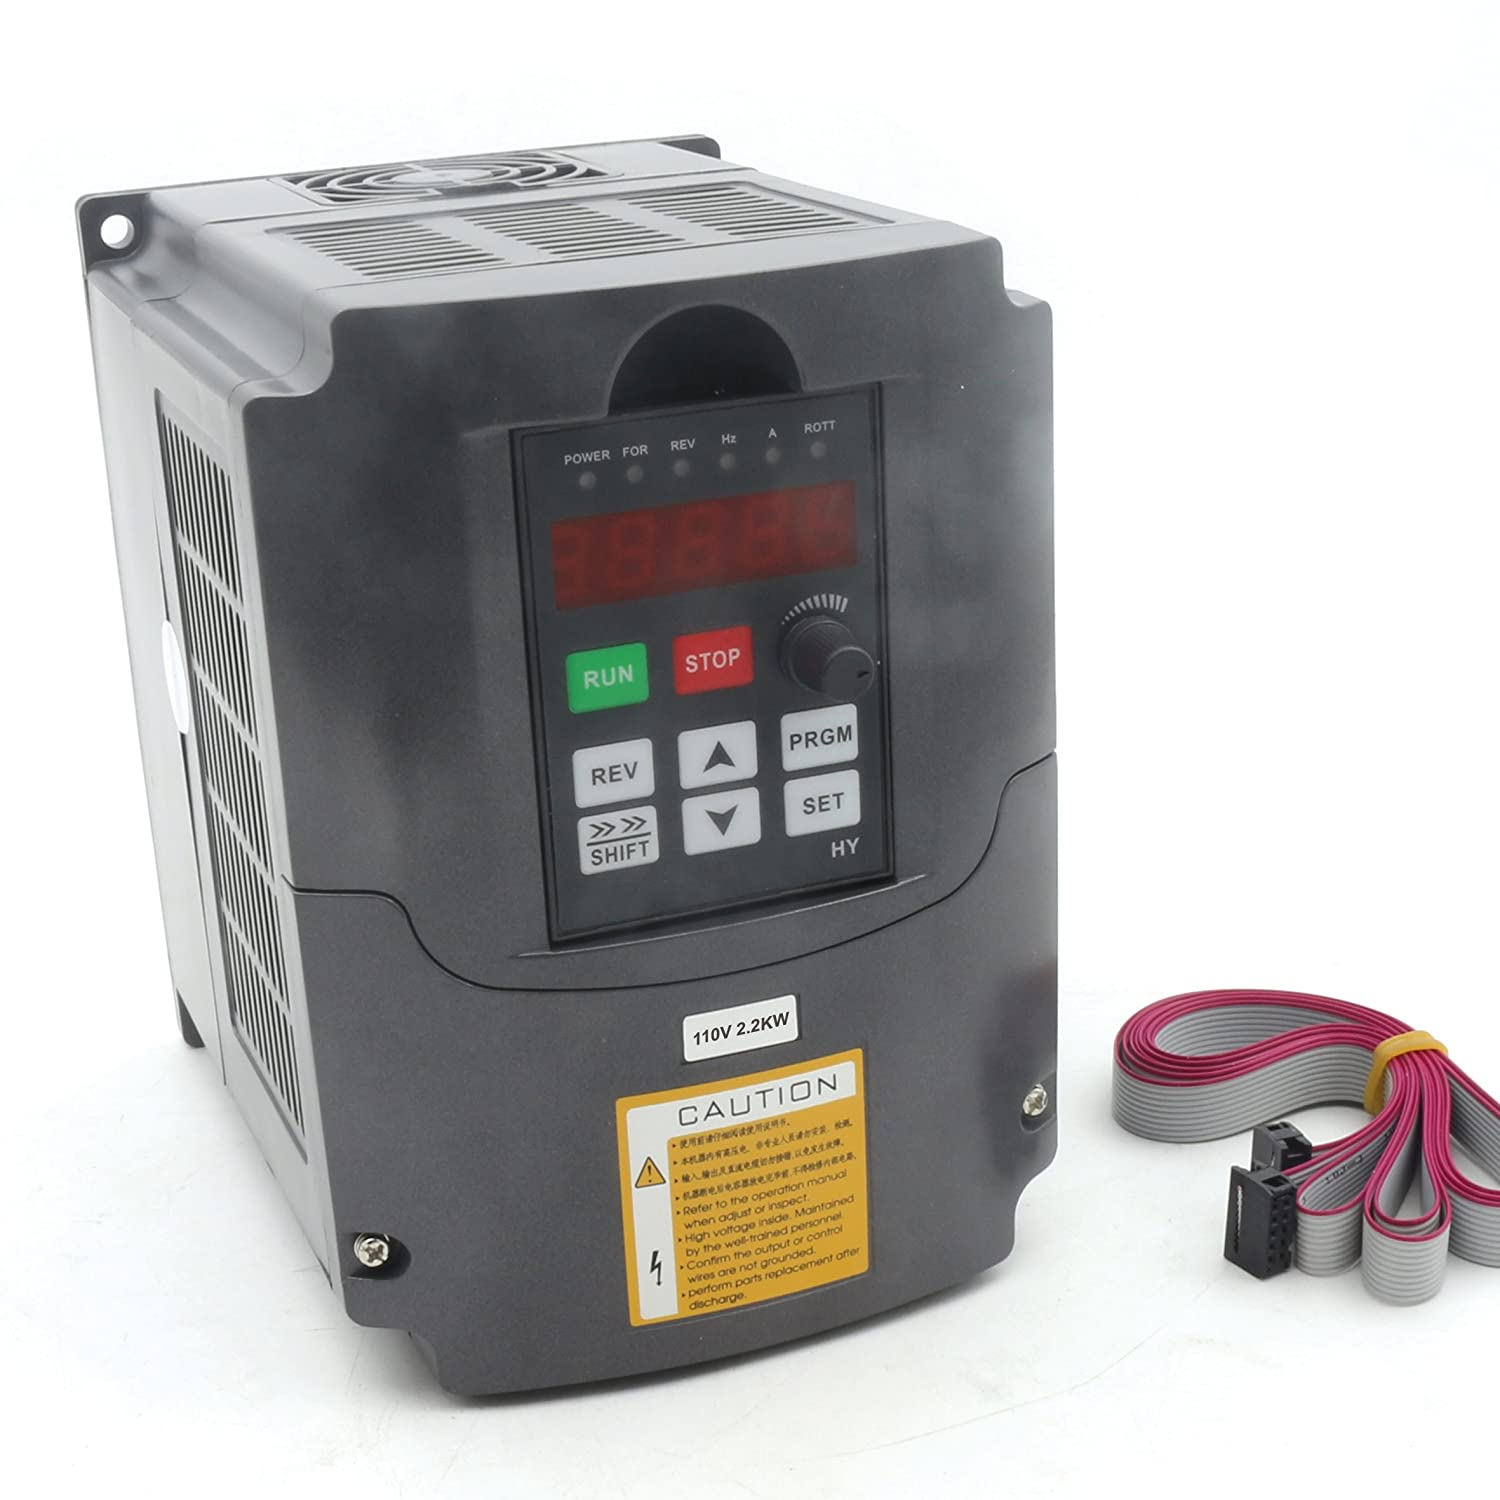 CNC 2.2KW Spindle Motor Speed Control 110V Variable Frequency Drive VFD 1HP or 3HP Input 3HP Frequency Inverter for CNC Router Milling Machines